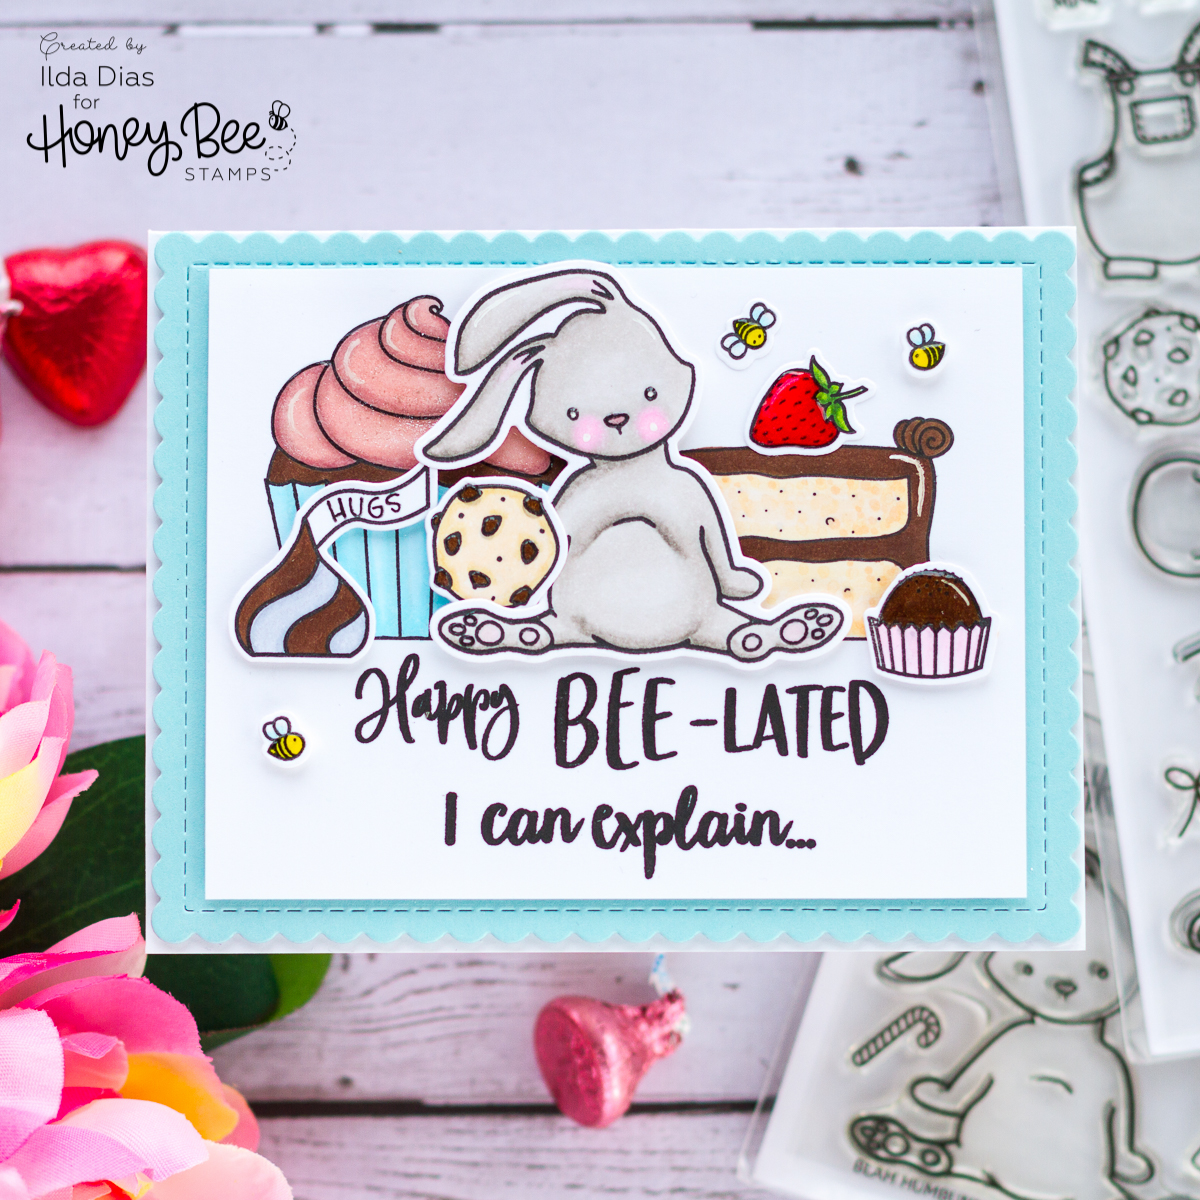 A Sweet Happy Bee-lated Birthday Card